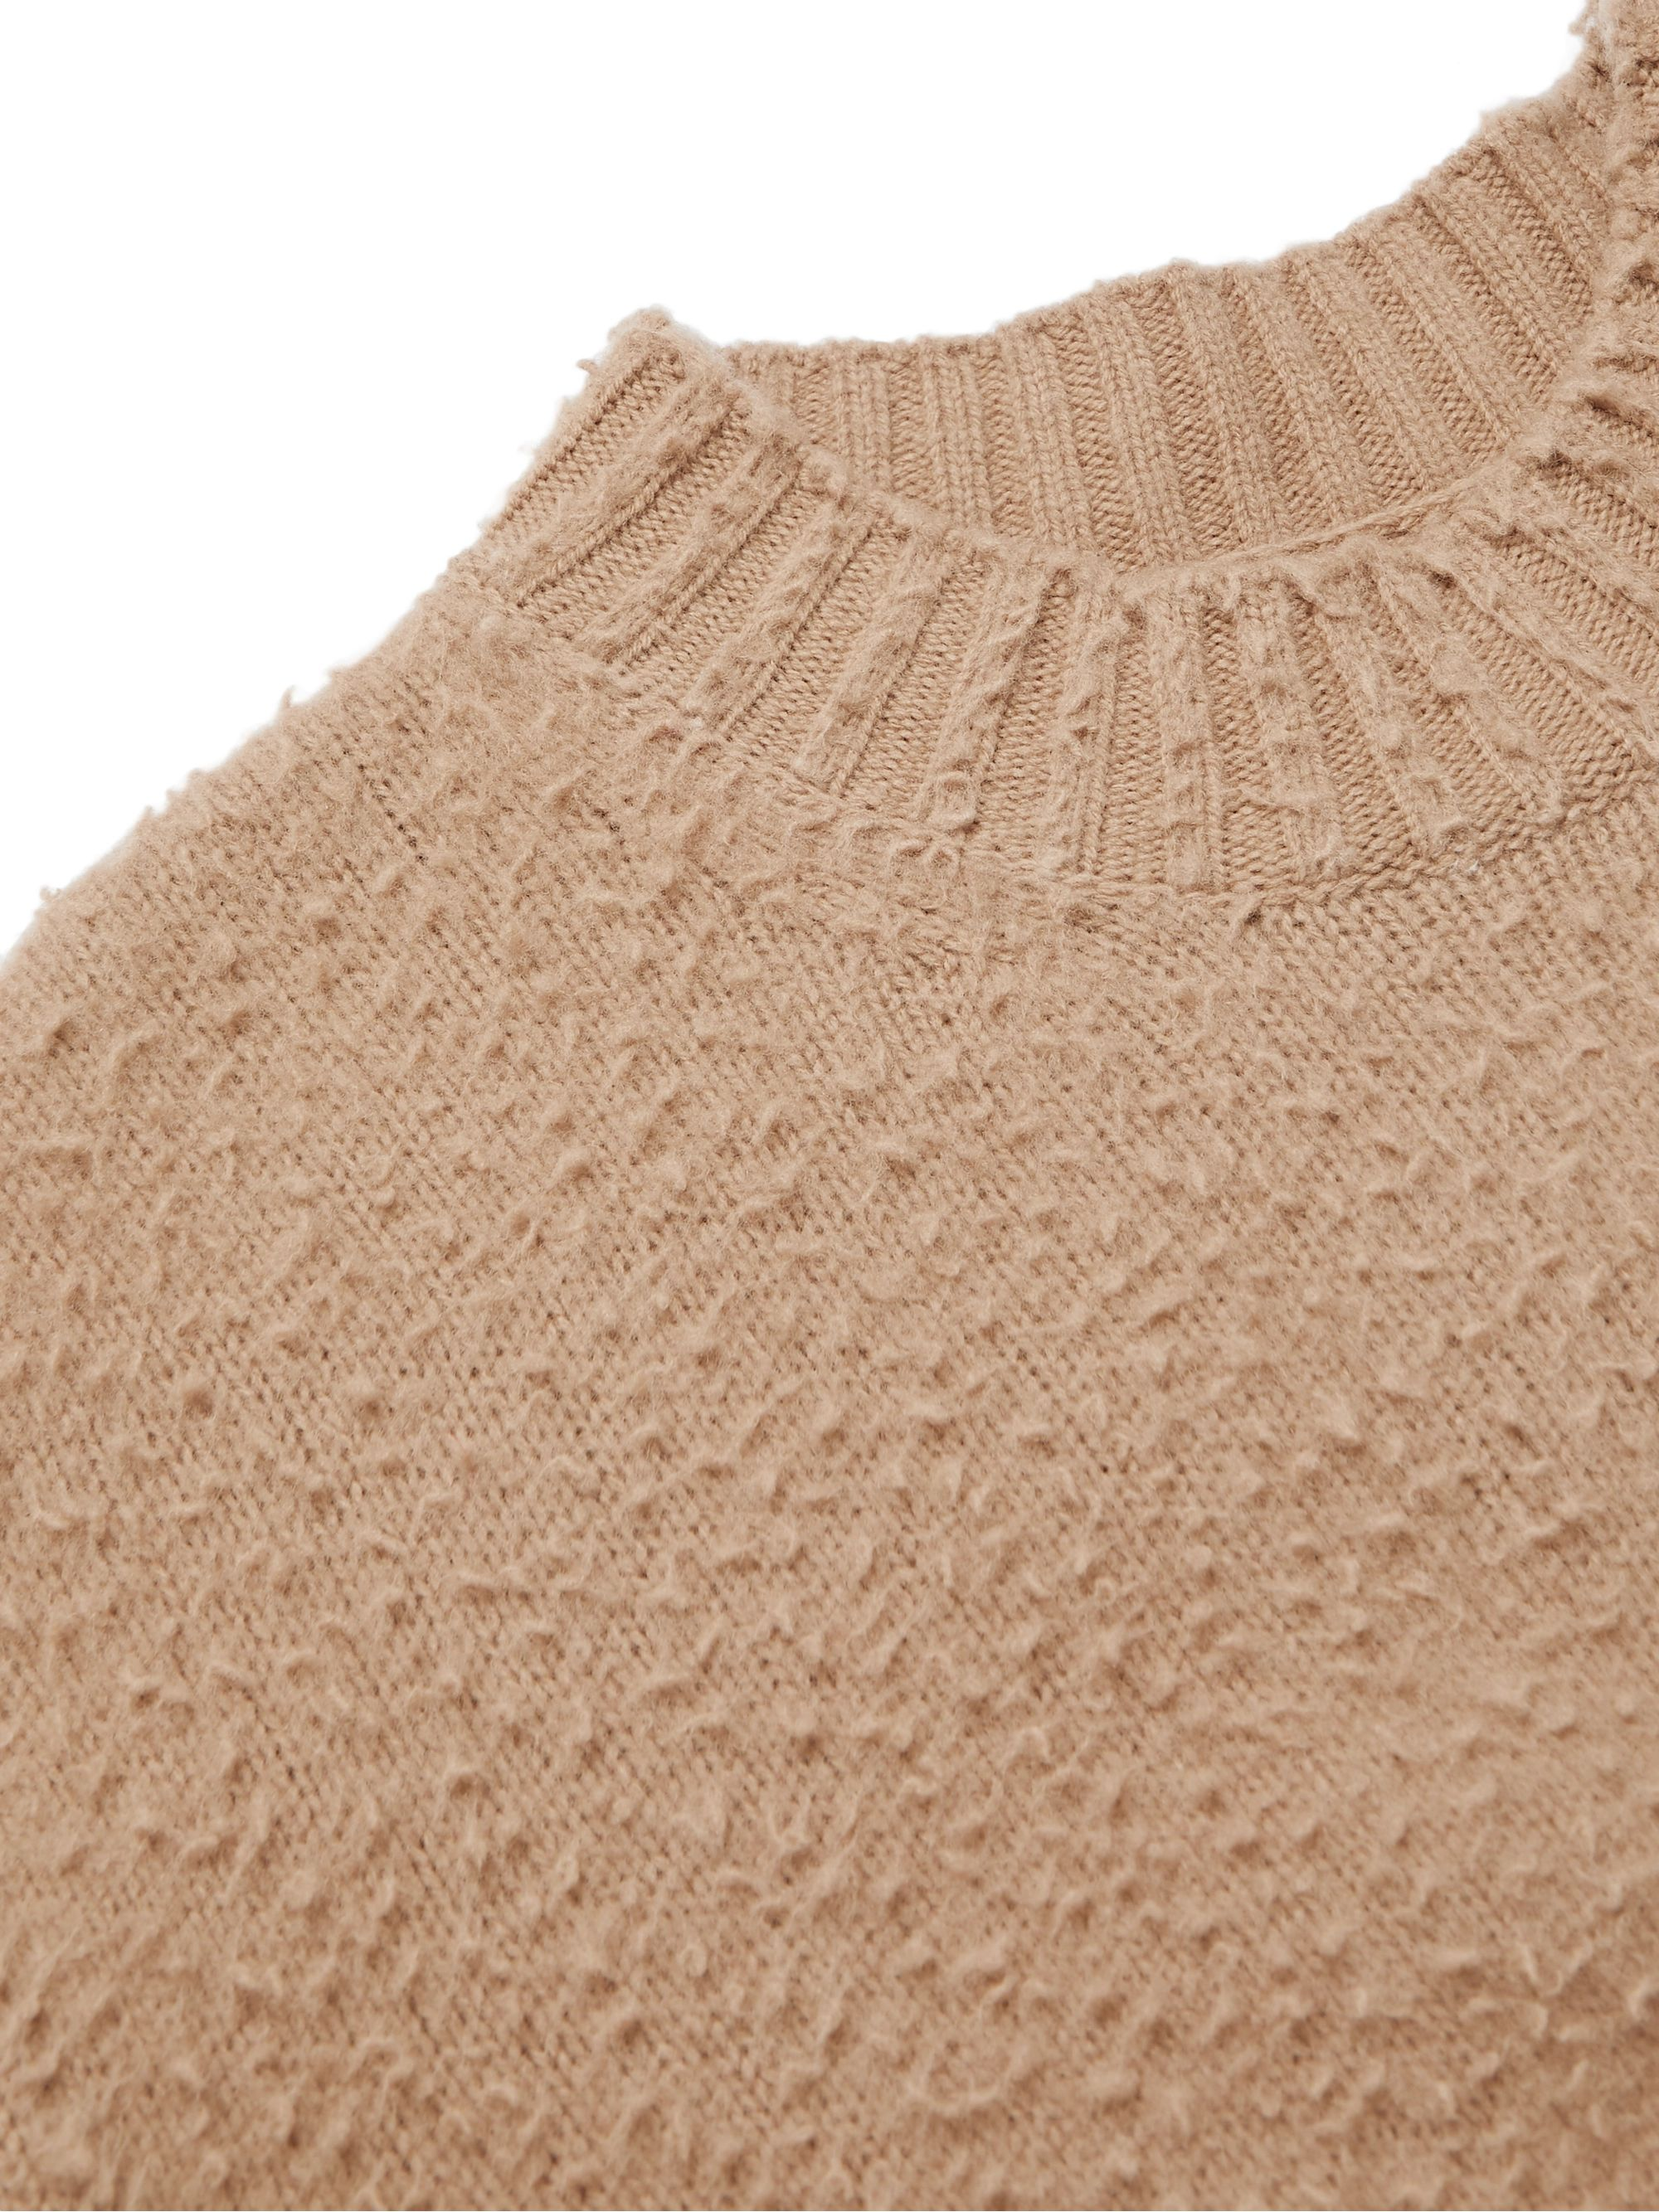 Maison Margiela Oversized Textured-Knit Wool Sweater